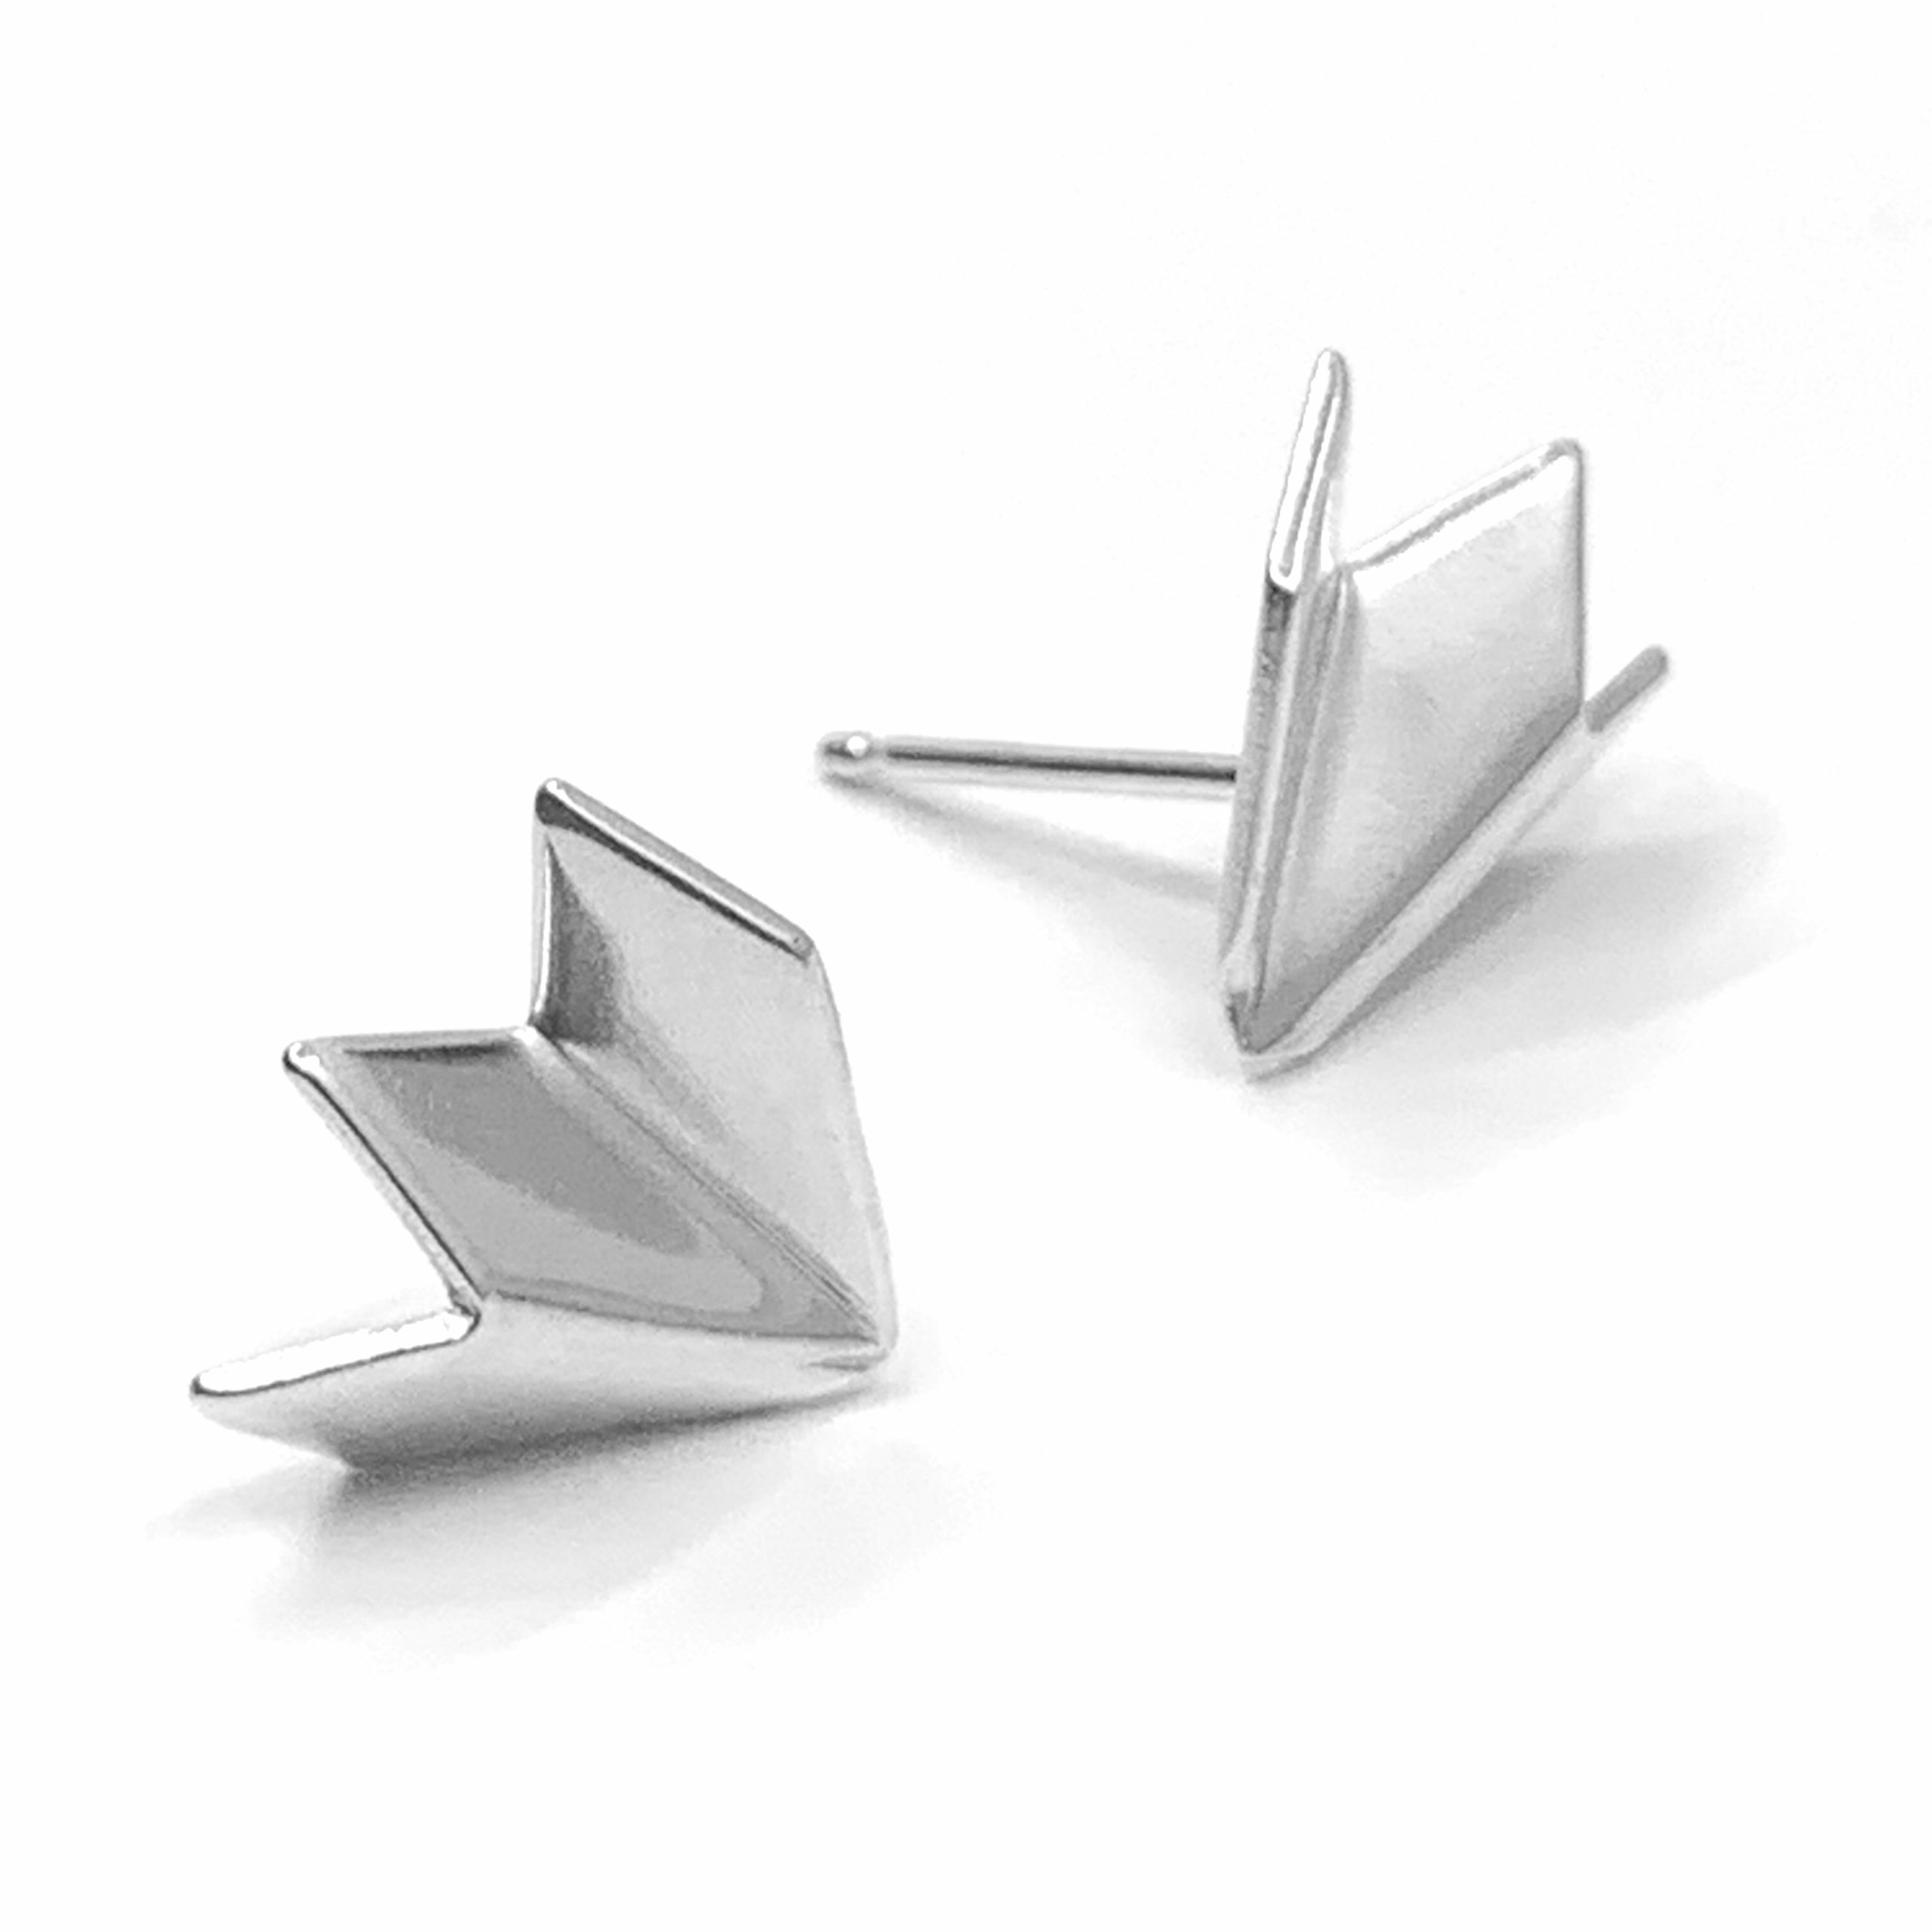 Unfolded small silver studs